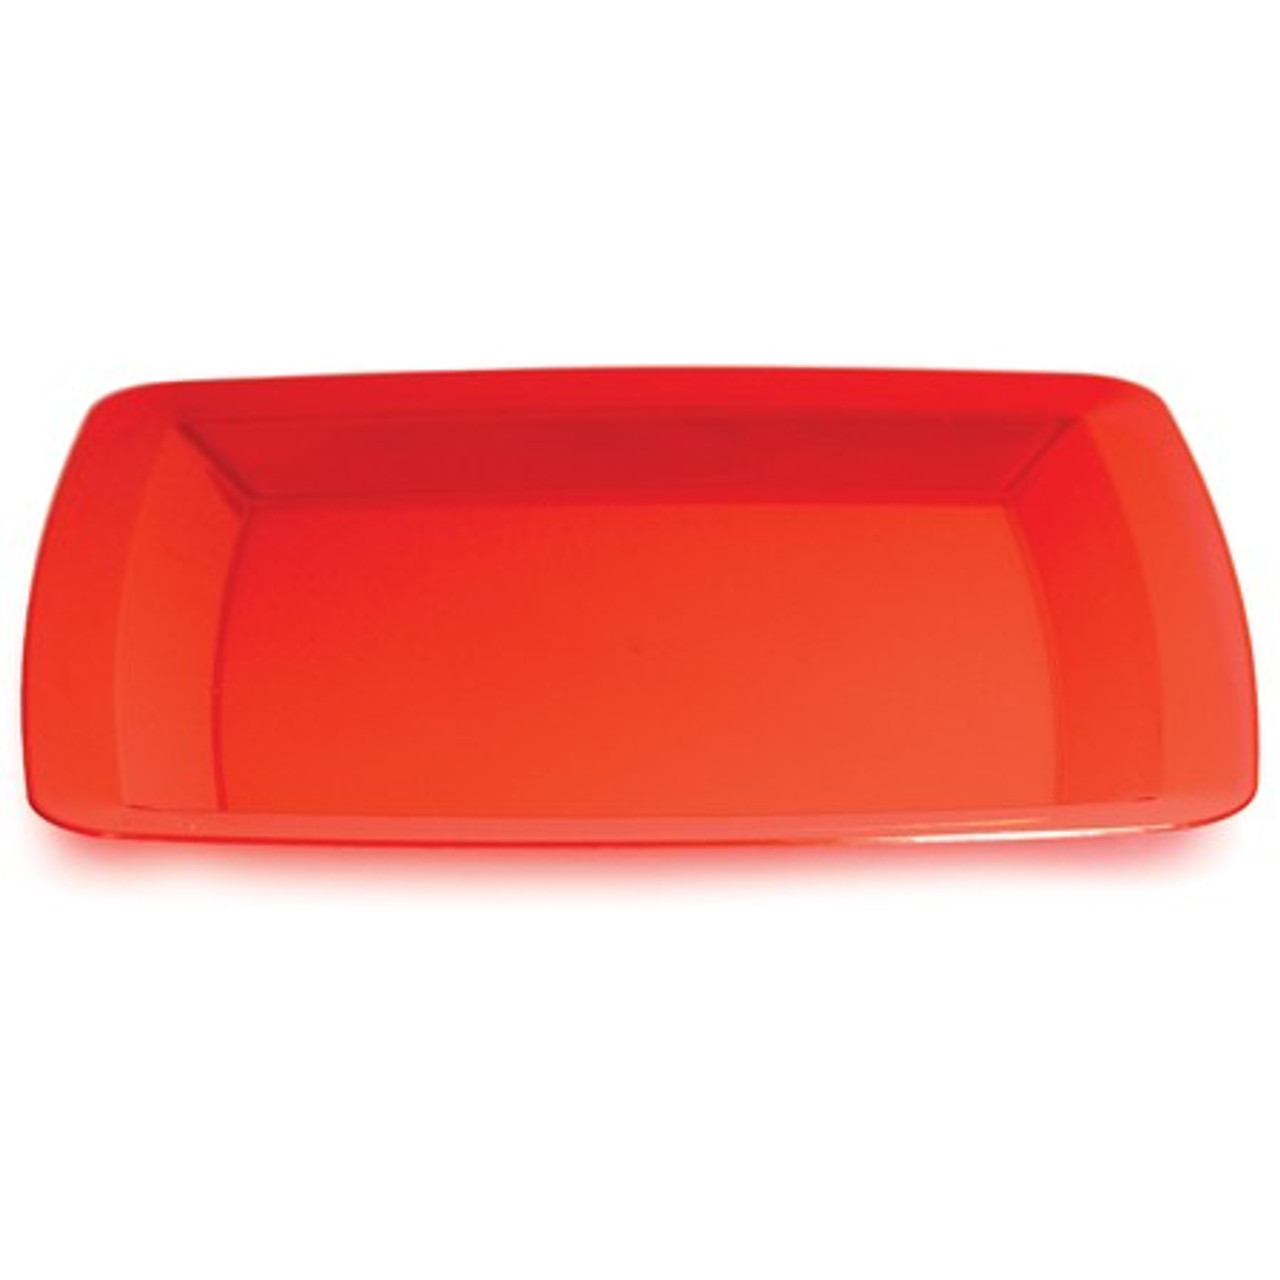 Club Pack of 48 Translucent Red Plastic Square Party Banquet Dinner Plates 10.25  - 31379357  sc 1 st  Christmas Central & Club Pack of 48 Translucent Red Plastic Square Party Banquet Dinner ...